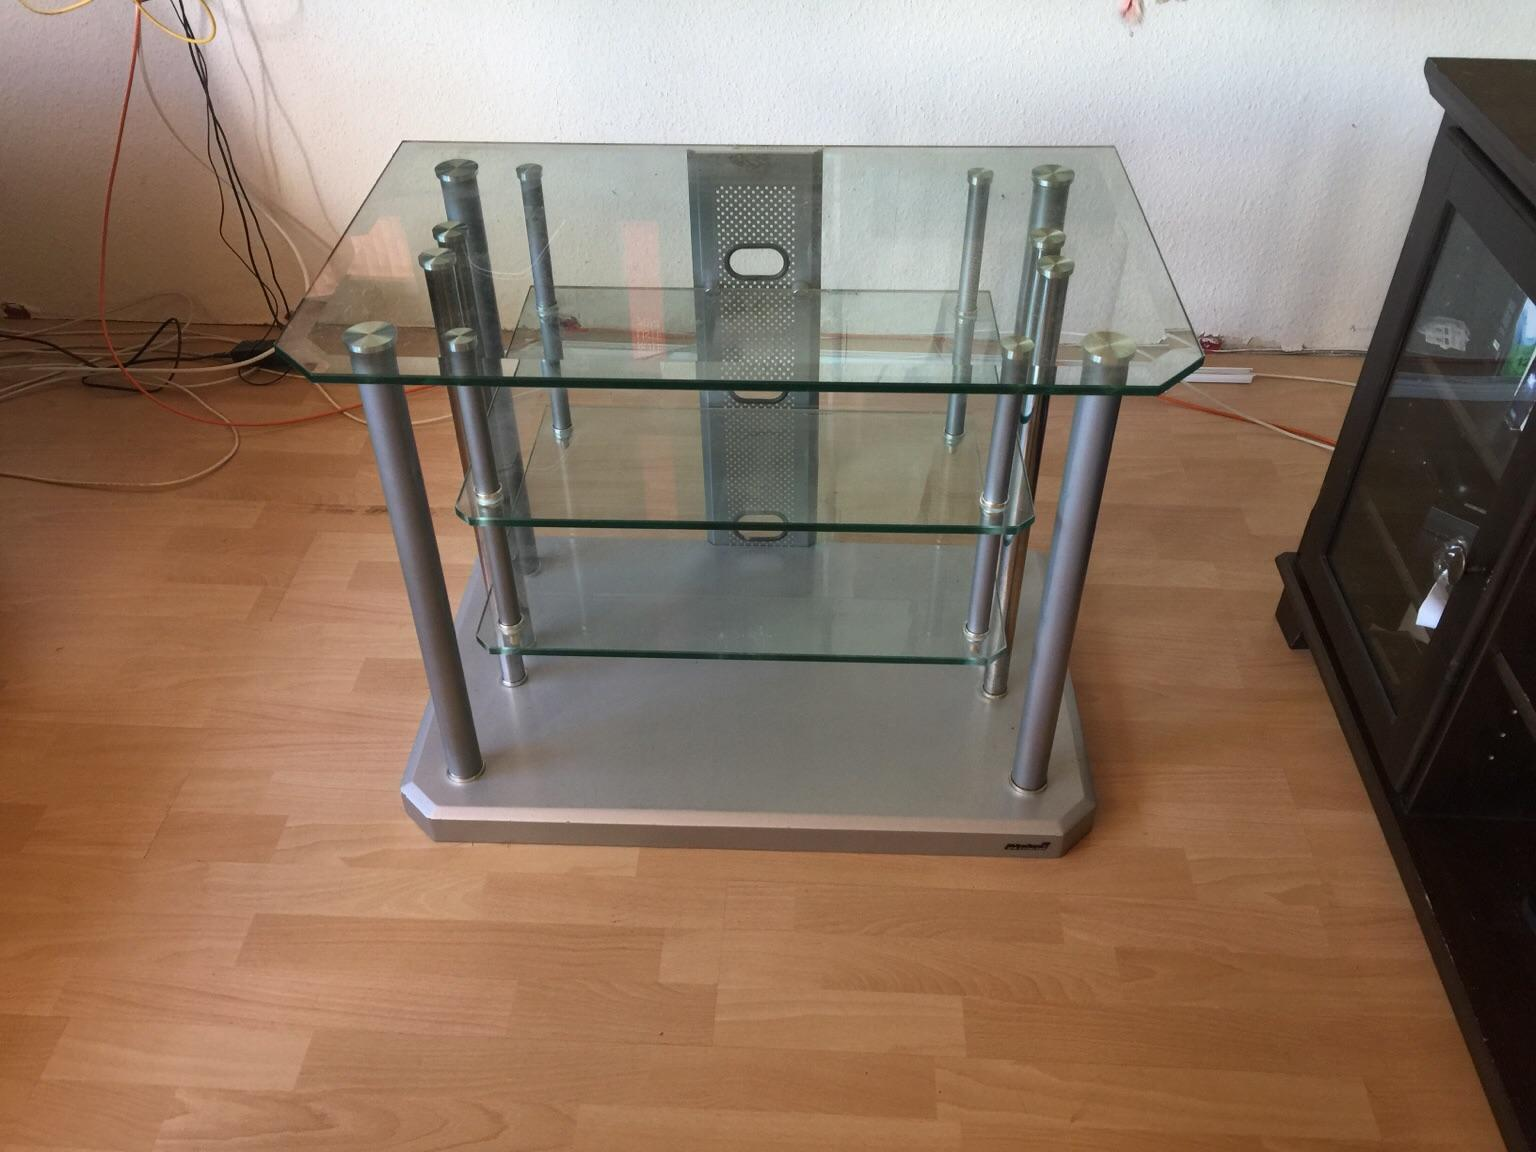 Tv Rack Glas Bfk Collection In 68723 Oftersheim For 1 00 For Sale Shpock